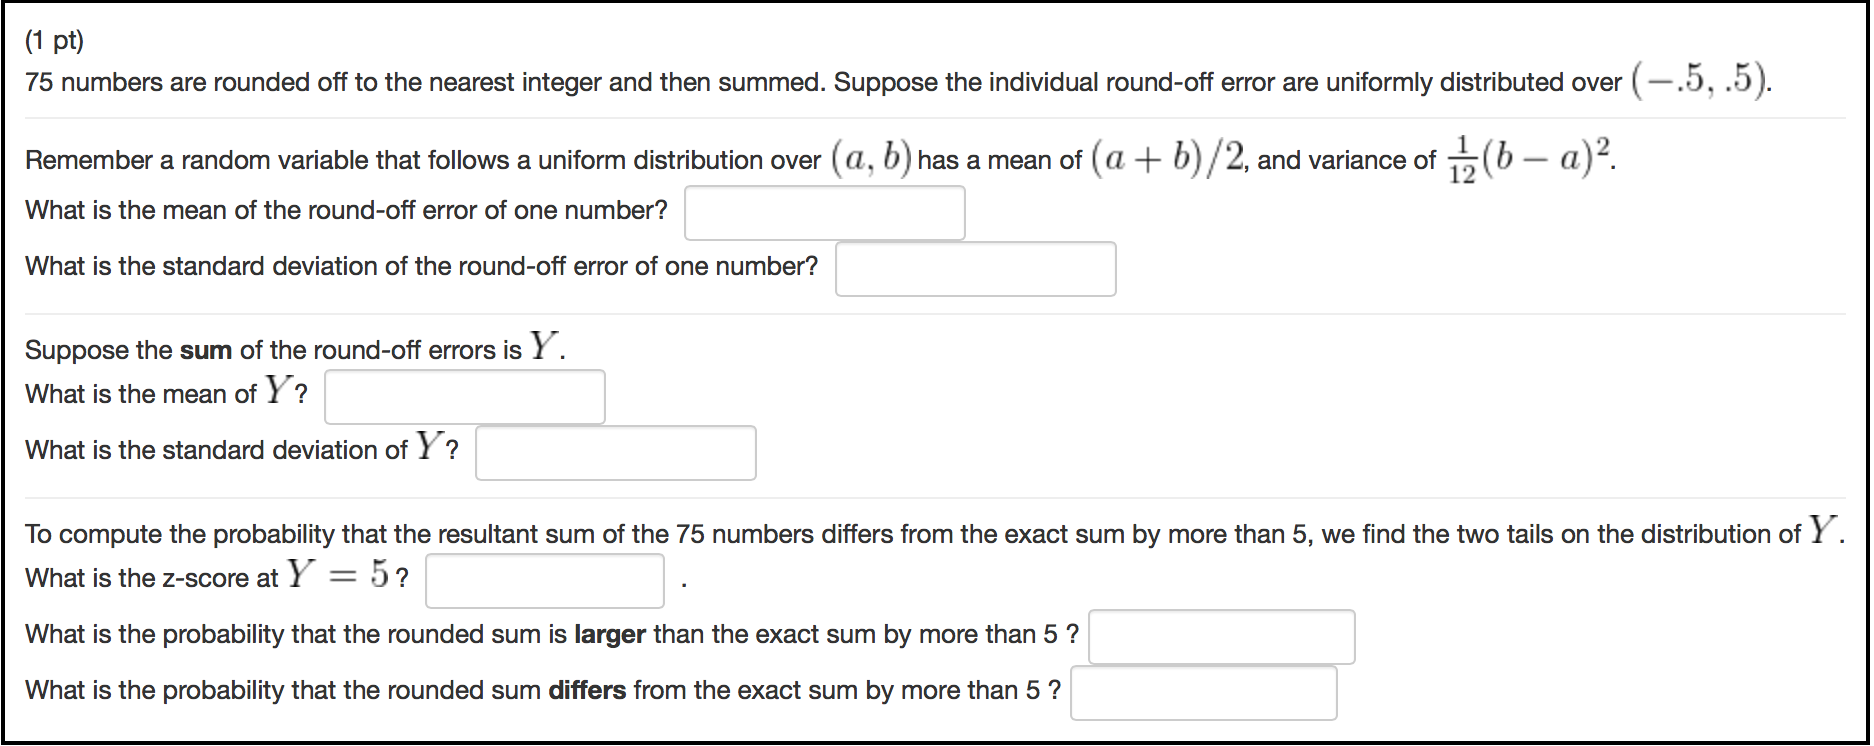 75 Numbers Are Rounded f To The Nearest Integer